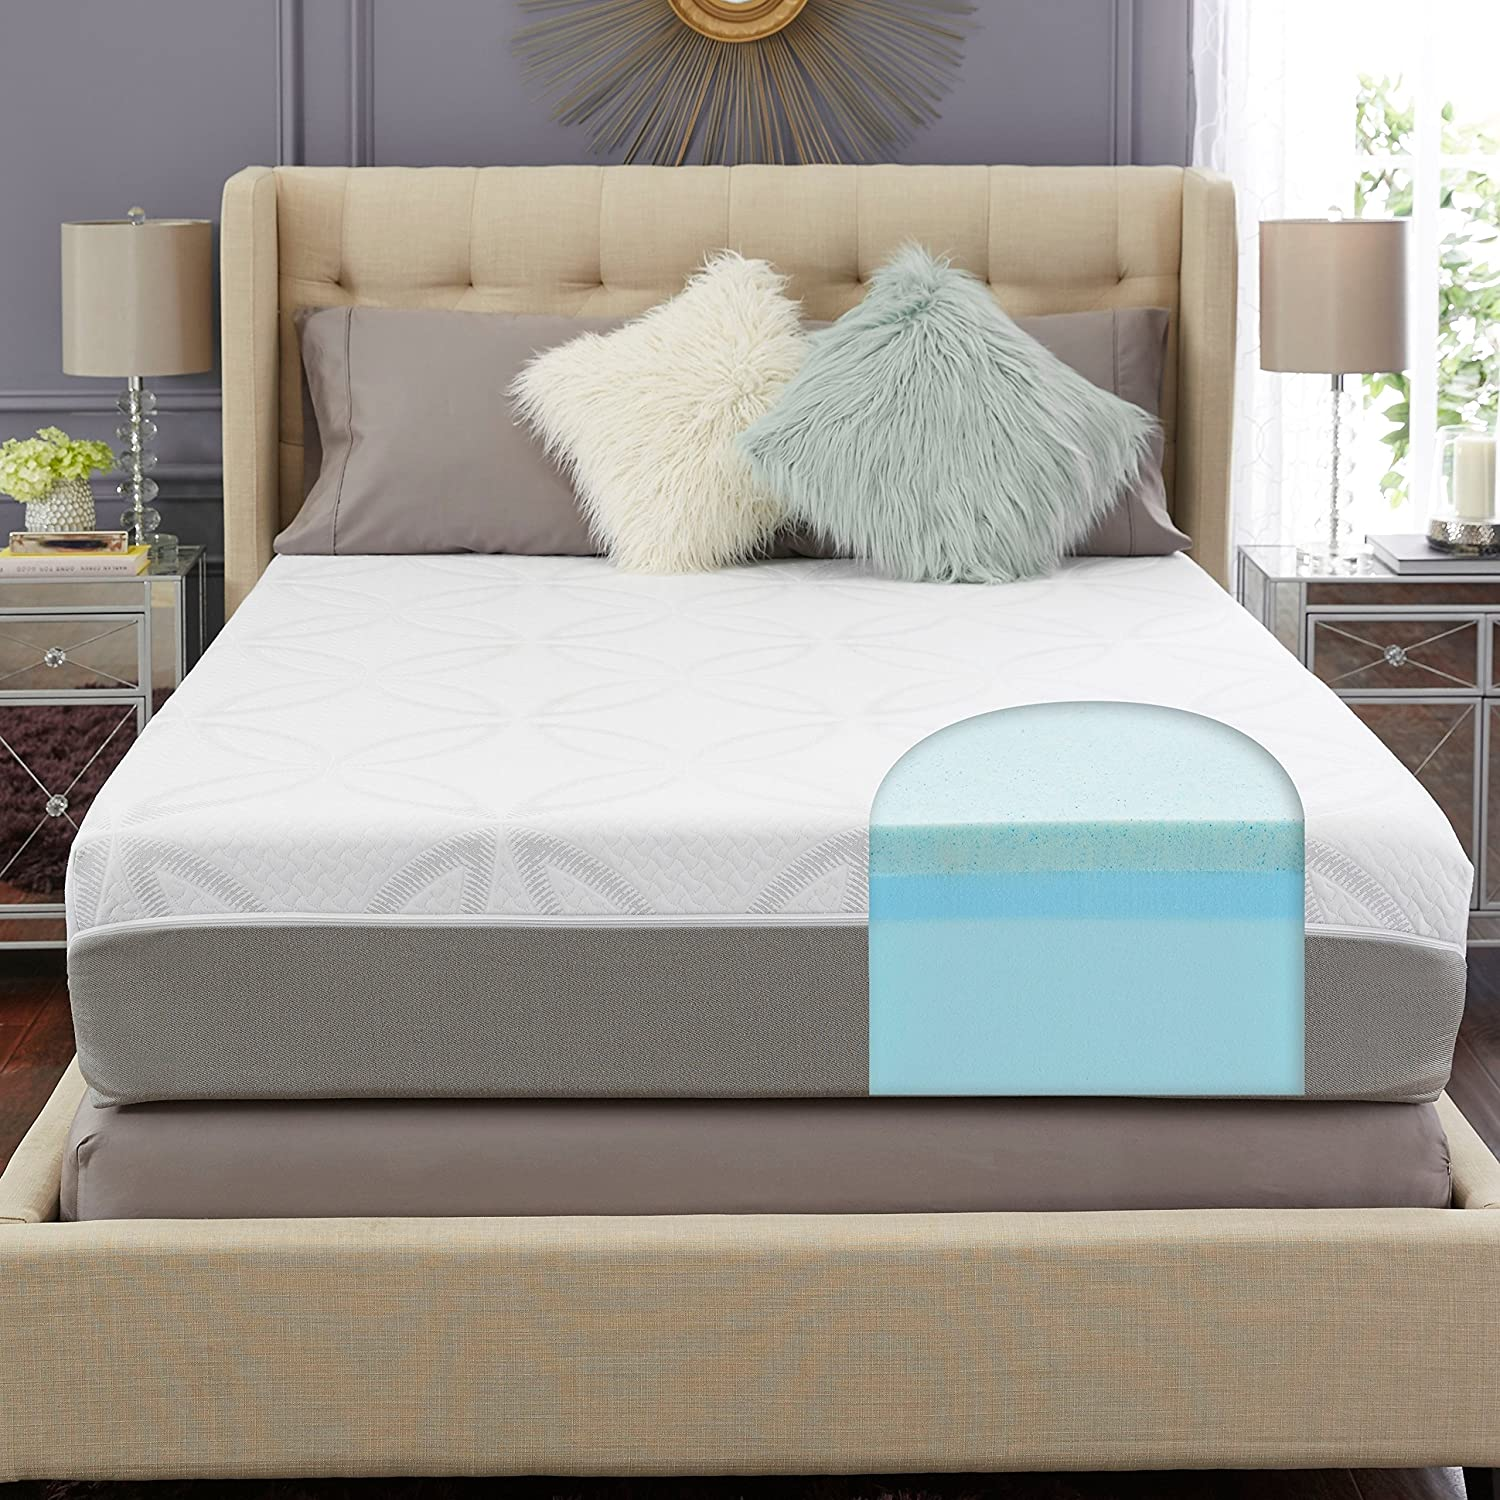 amazon com trupedic 12 inch queen gel memory foam mattress firm